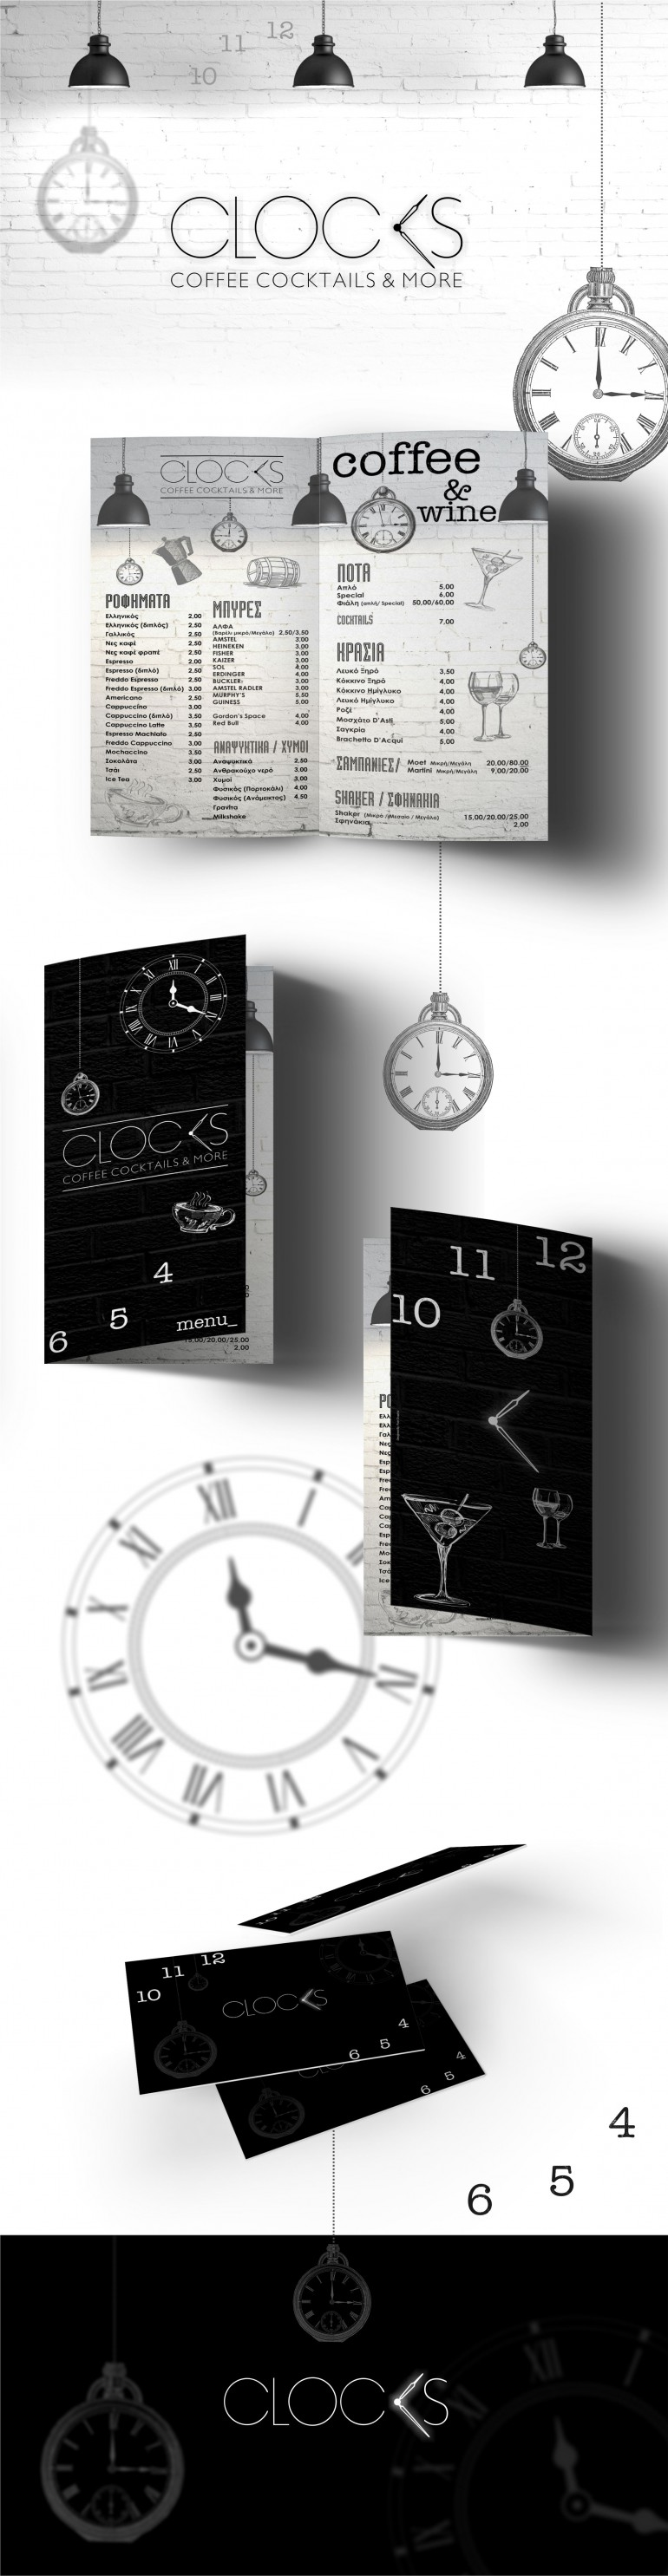 """Logo branding and Menu for """"CLOCKS"""" a Coffee Cocktail Bar based in the north of Greece."""